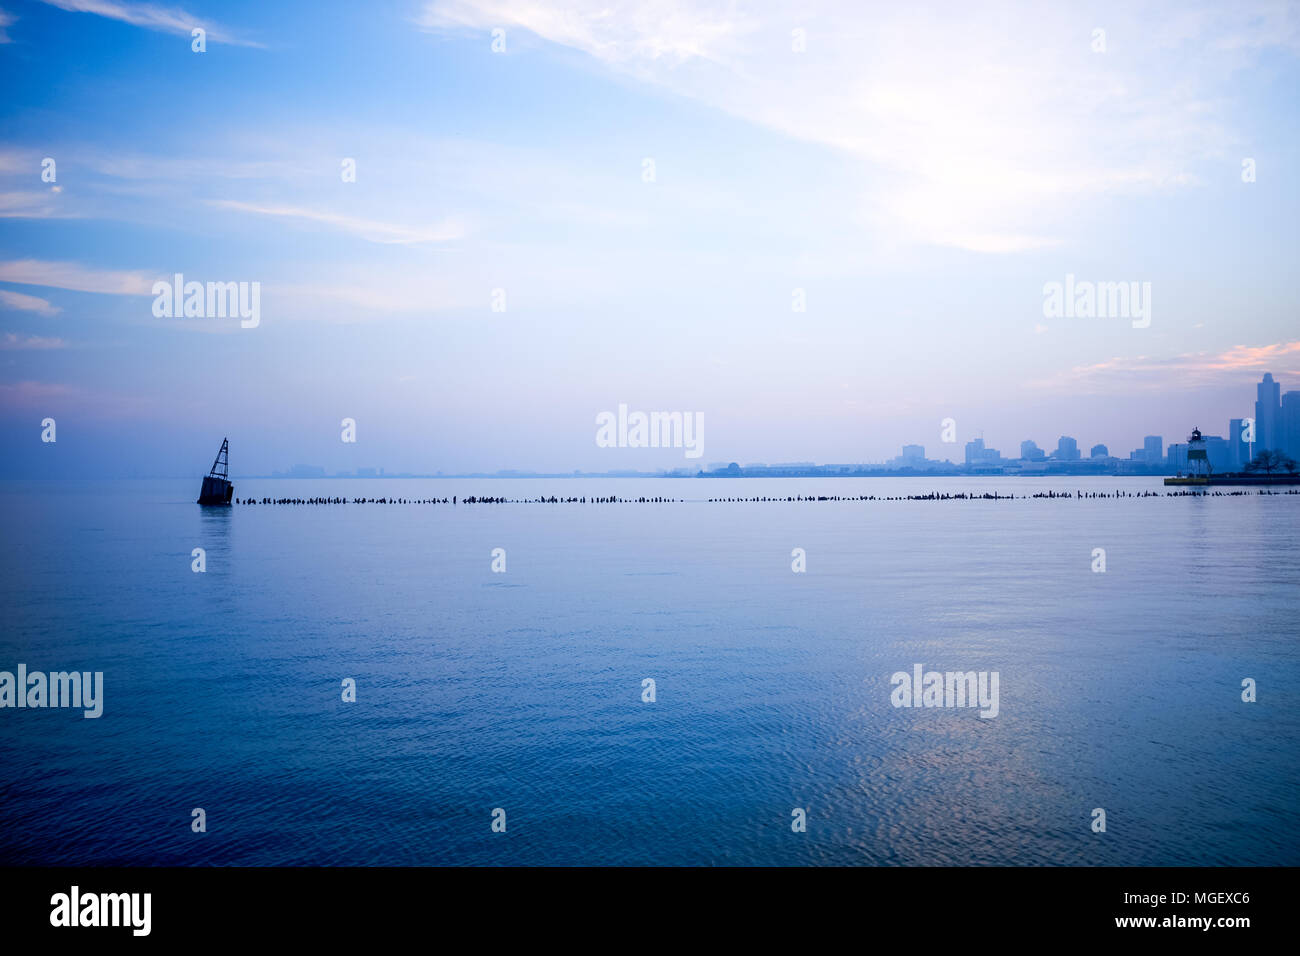 Cool blue minimalist Chicago skyline landscape viewed over Lake Michigan with a pier and navigation beacon in the foreground and silhouetted city on t Stock Photo